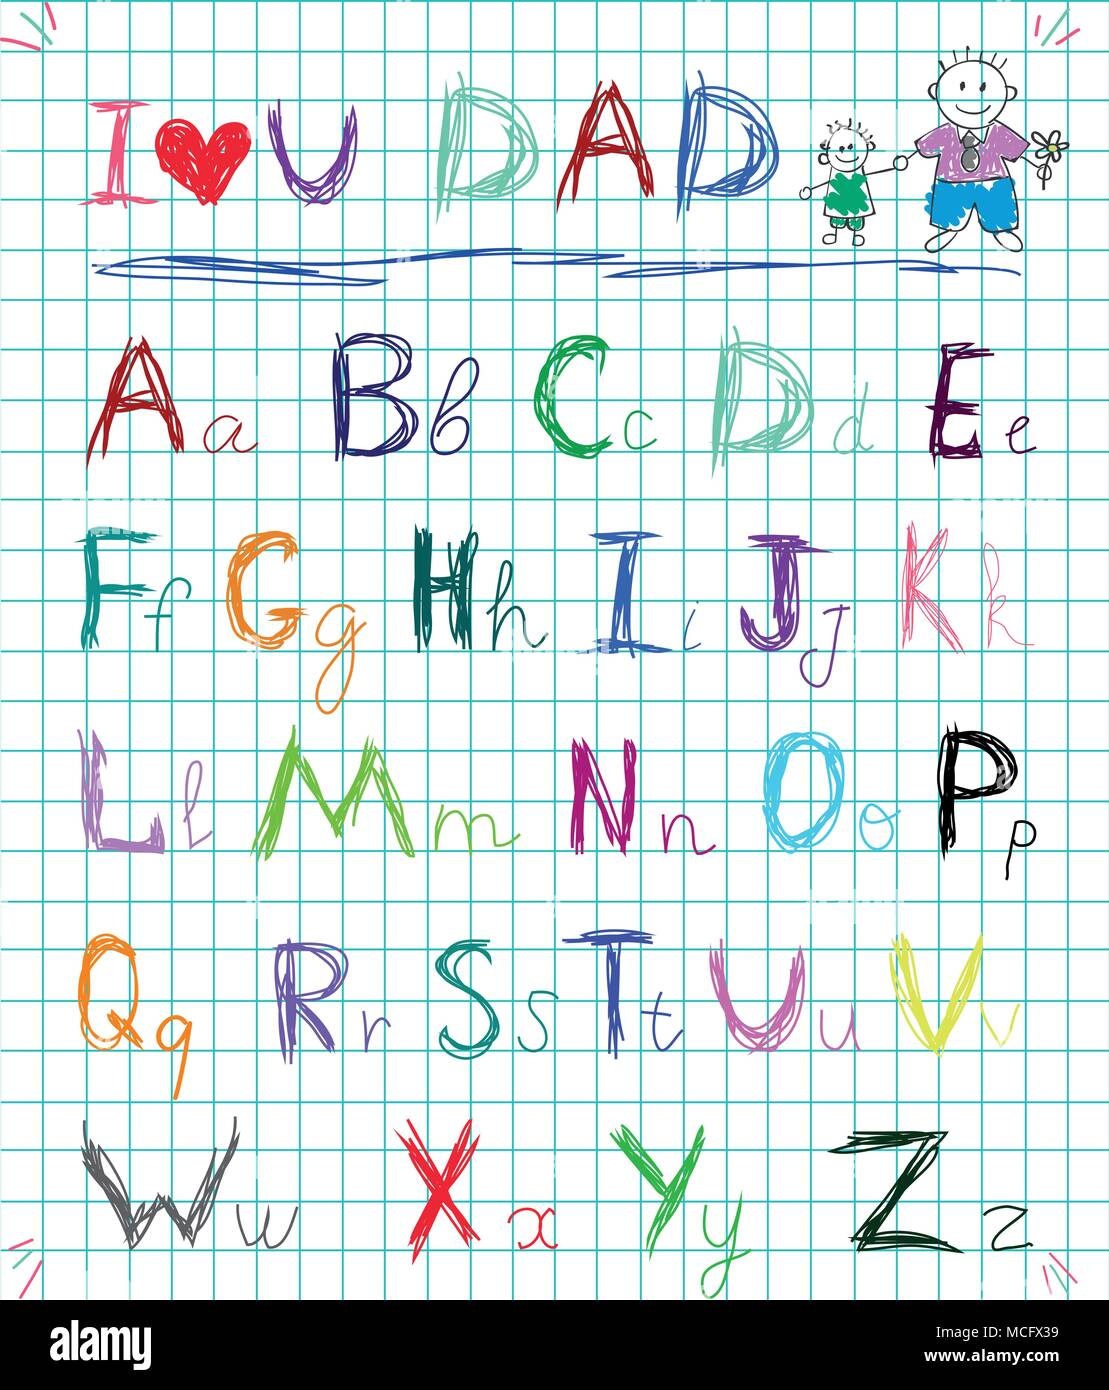 Multicolored baby sketch hand drawn doodle alphabet letters on squared notebook page isolated vector illustration with I love you dad headline and chi - Stock Vector